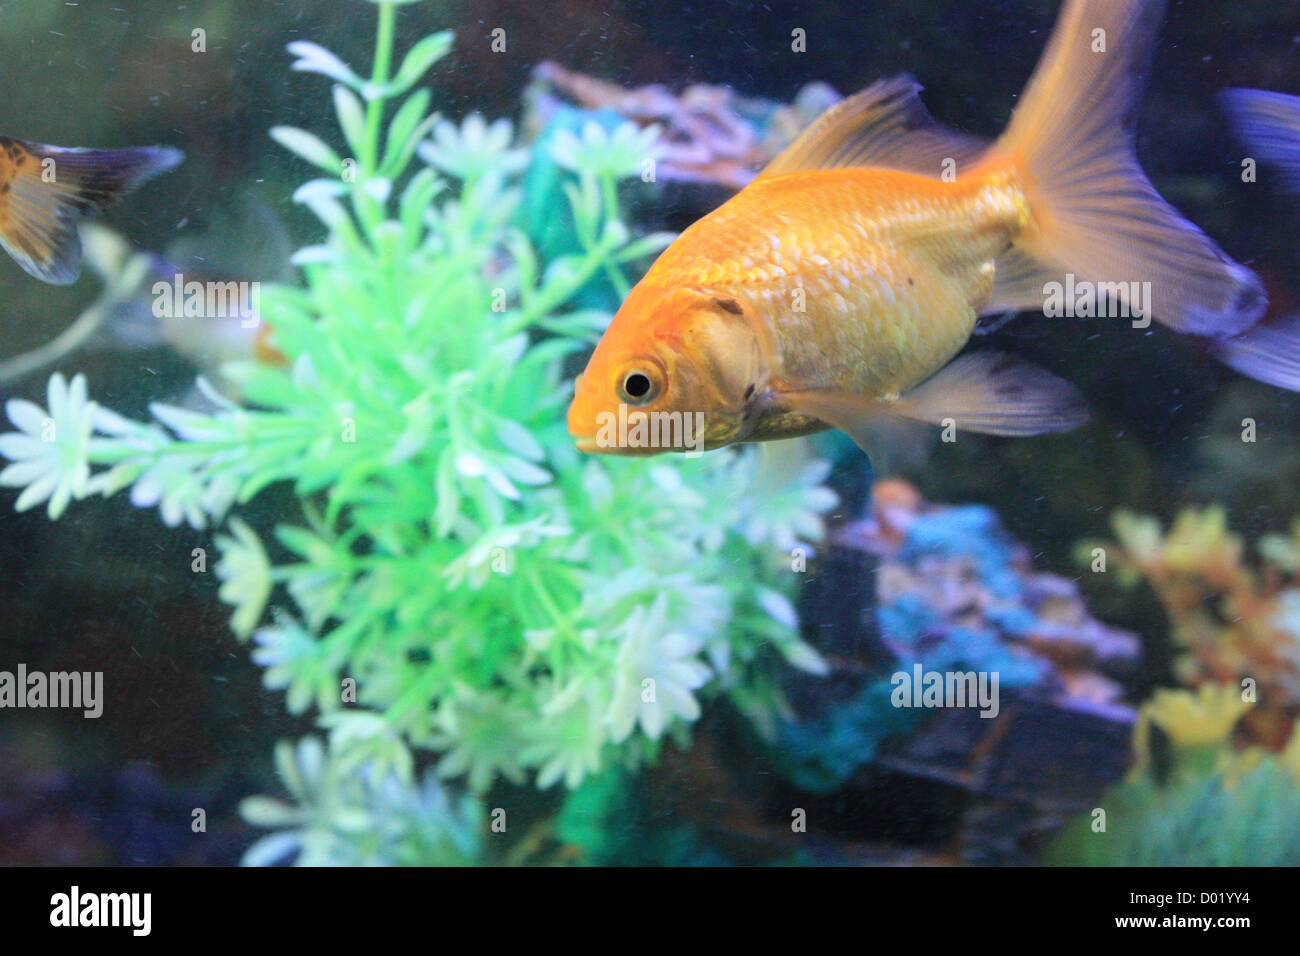 Freshwater aquarium fish store near me - Freshwater Fish Aquarium Fish Tropical Fish Pictures Of Fish Fish Tanks Fish For Sale All About Fish Salt Water Fish Che